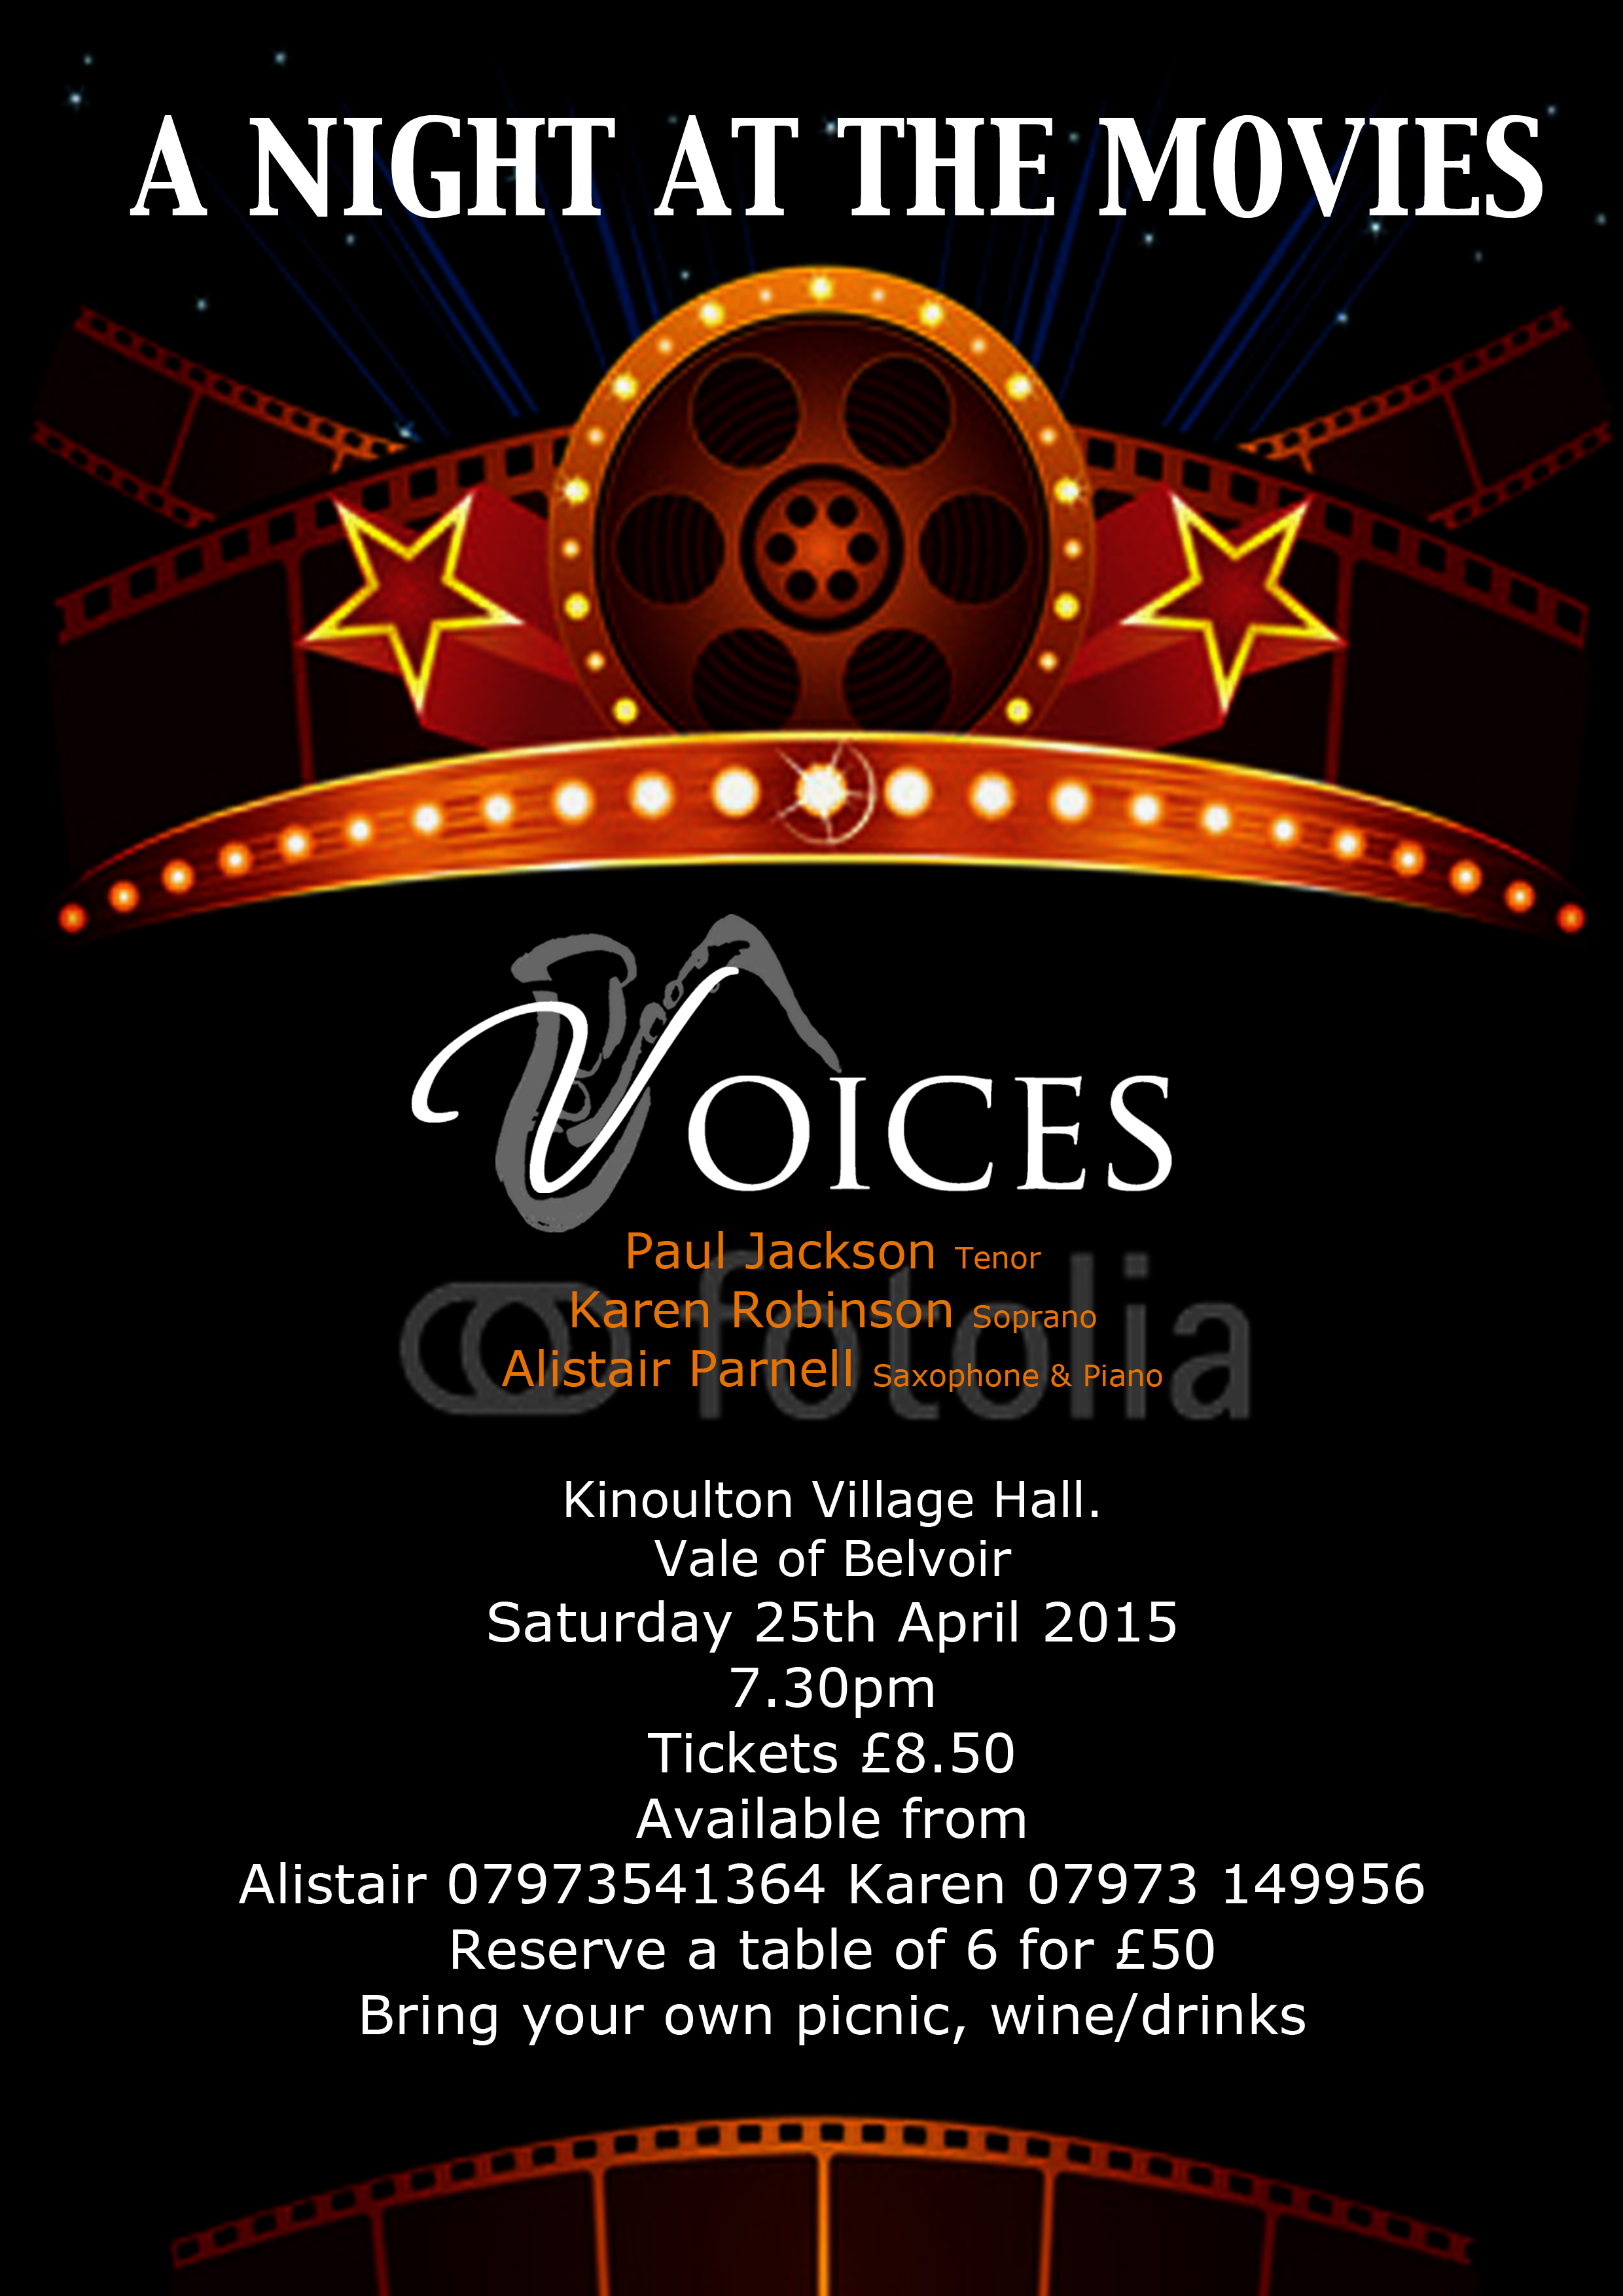 Voices-Night-at-the-Movies-2015